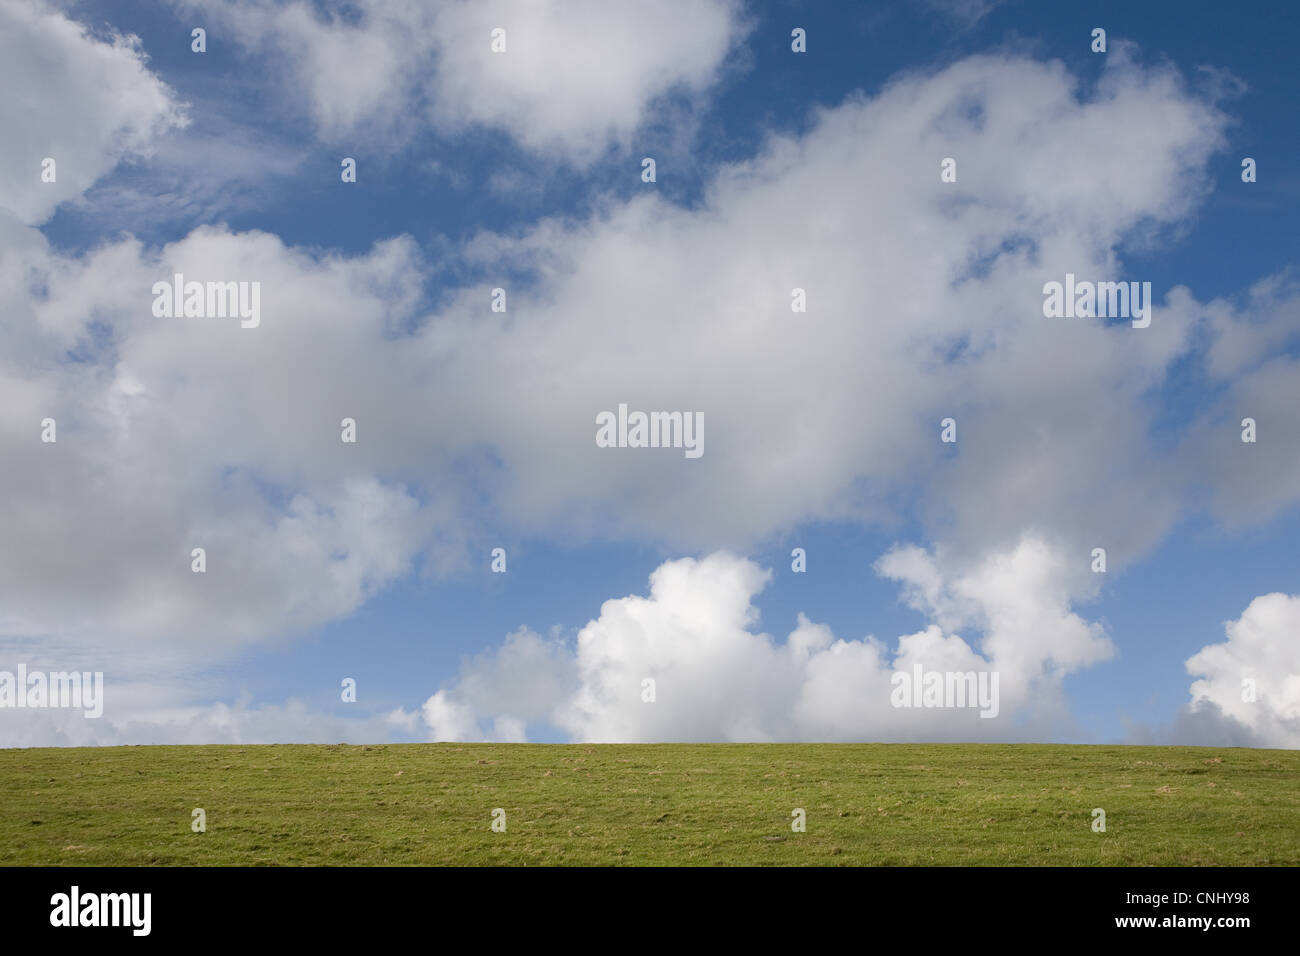 Green grass and clouds in blue sky - Stock Image